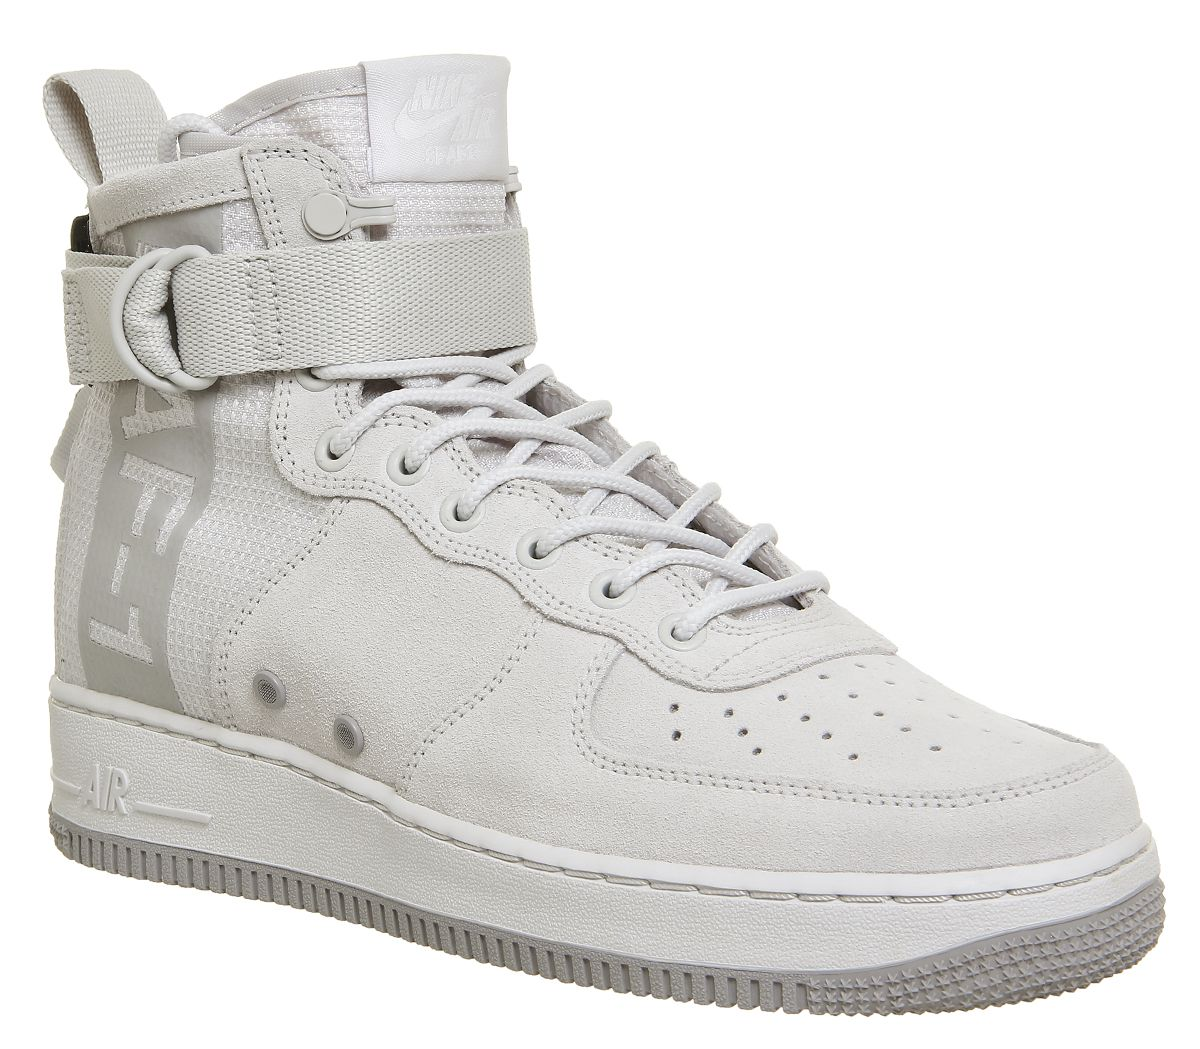 new concept b2c80 fbba9 Sf Af1 Mid 17 Trainers